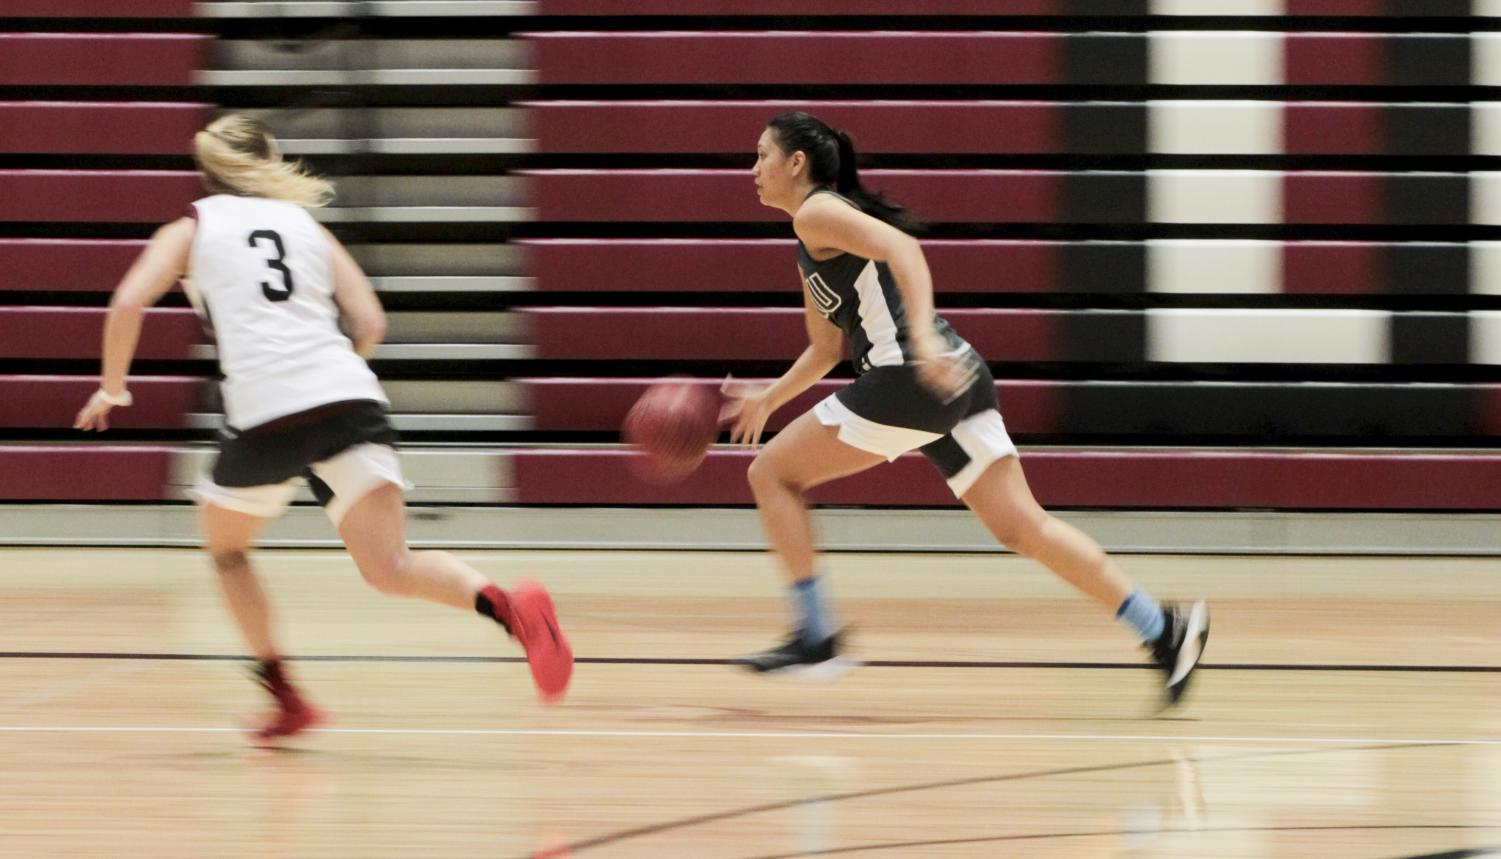 Alexis Pana shoots free throws during practice with a .700 percent over two seasons.